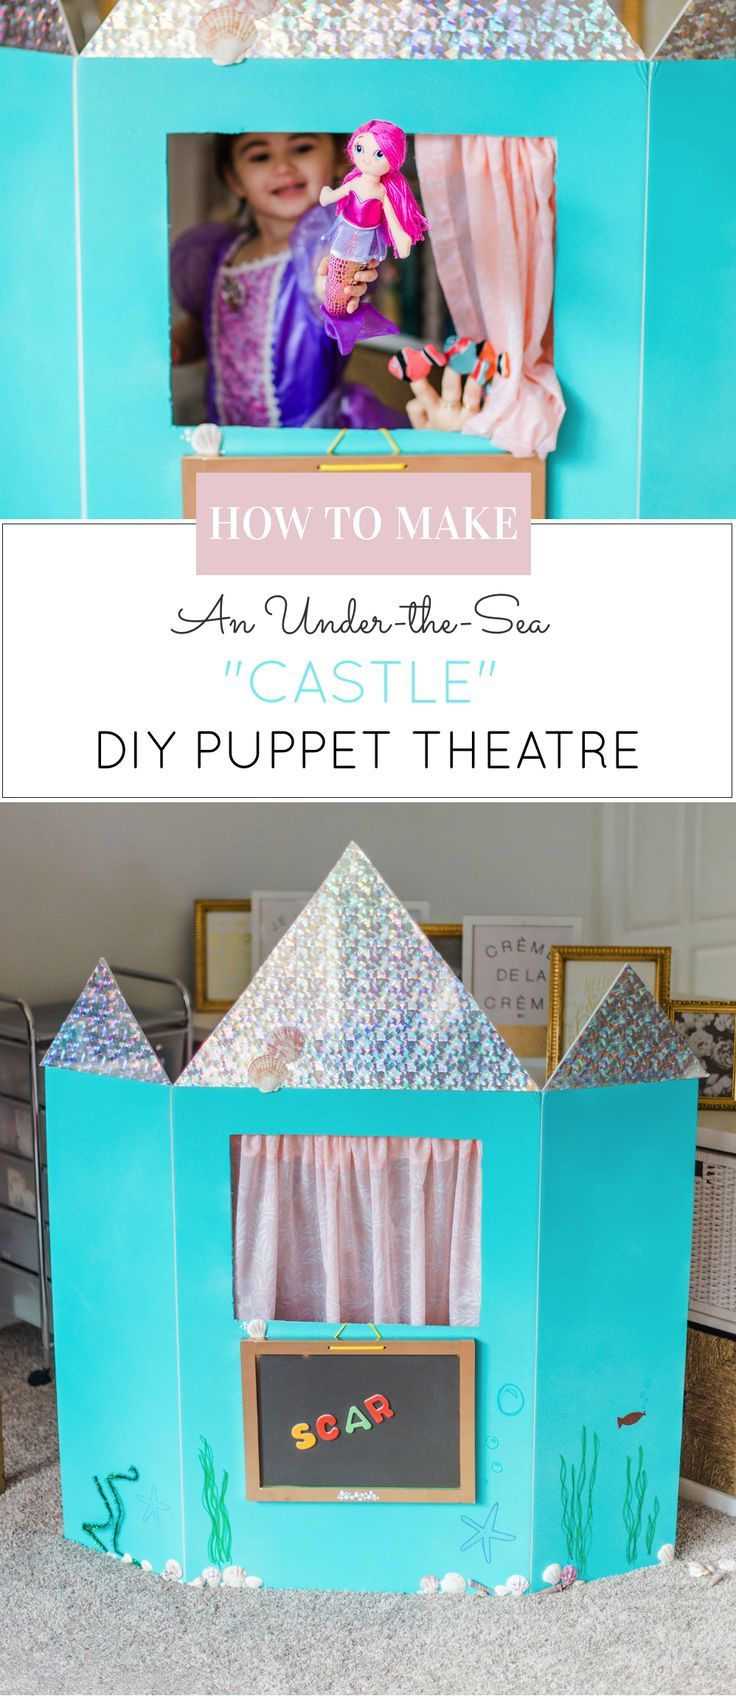 How to make a DIY Puppet Theatre with a trifold foam poster board. (Learning Colors, Numbers, and Letters too ... in an under-the-sea CASTLE!) | DIY fun for kids | kids activities | at-home play for kids | imaginative play for kids | fun activities for kids | glitterinc.com | @glitterinc